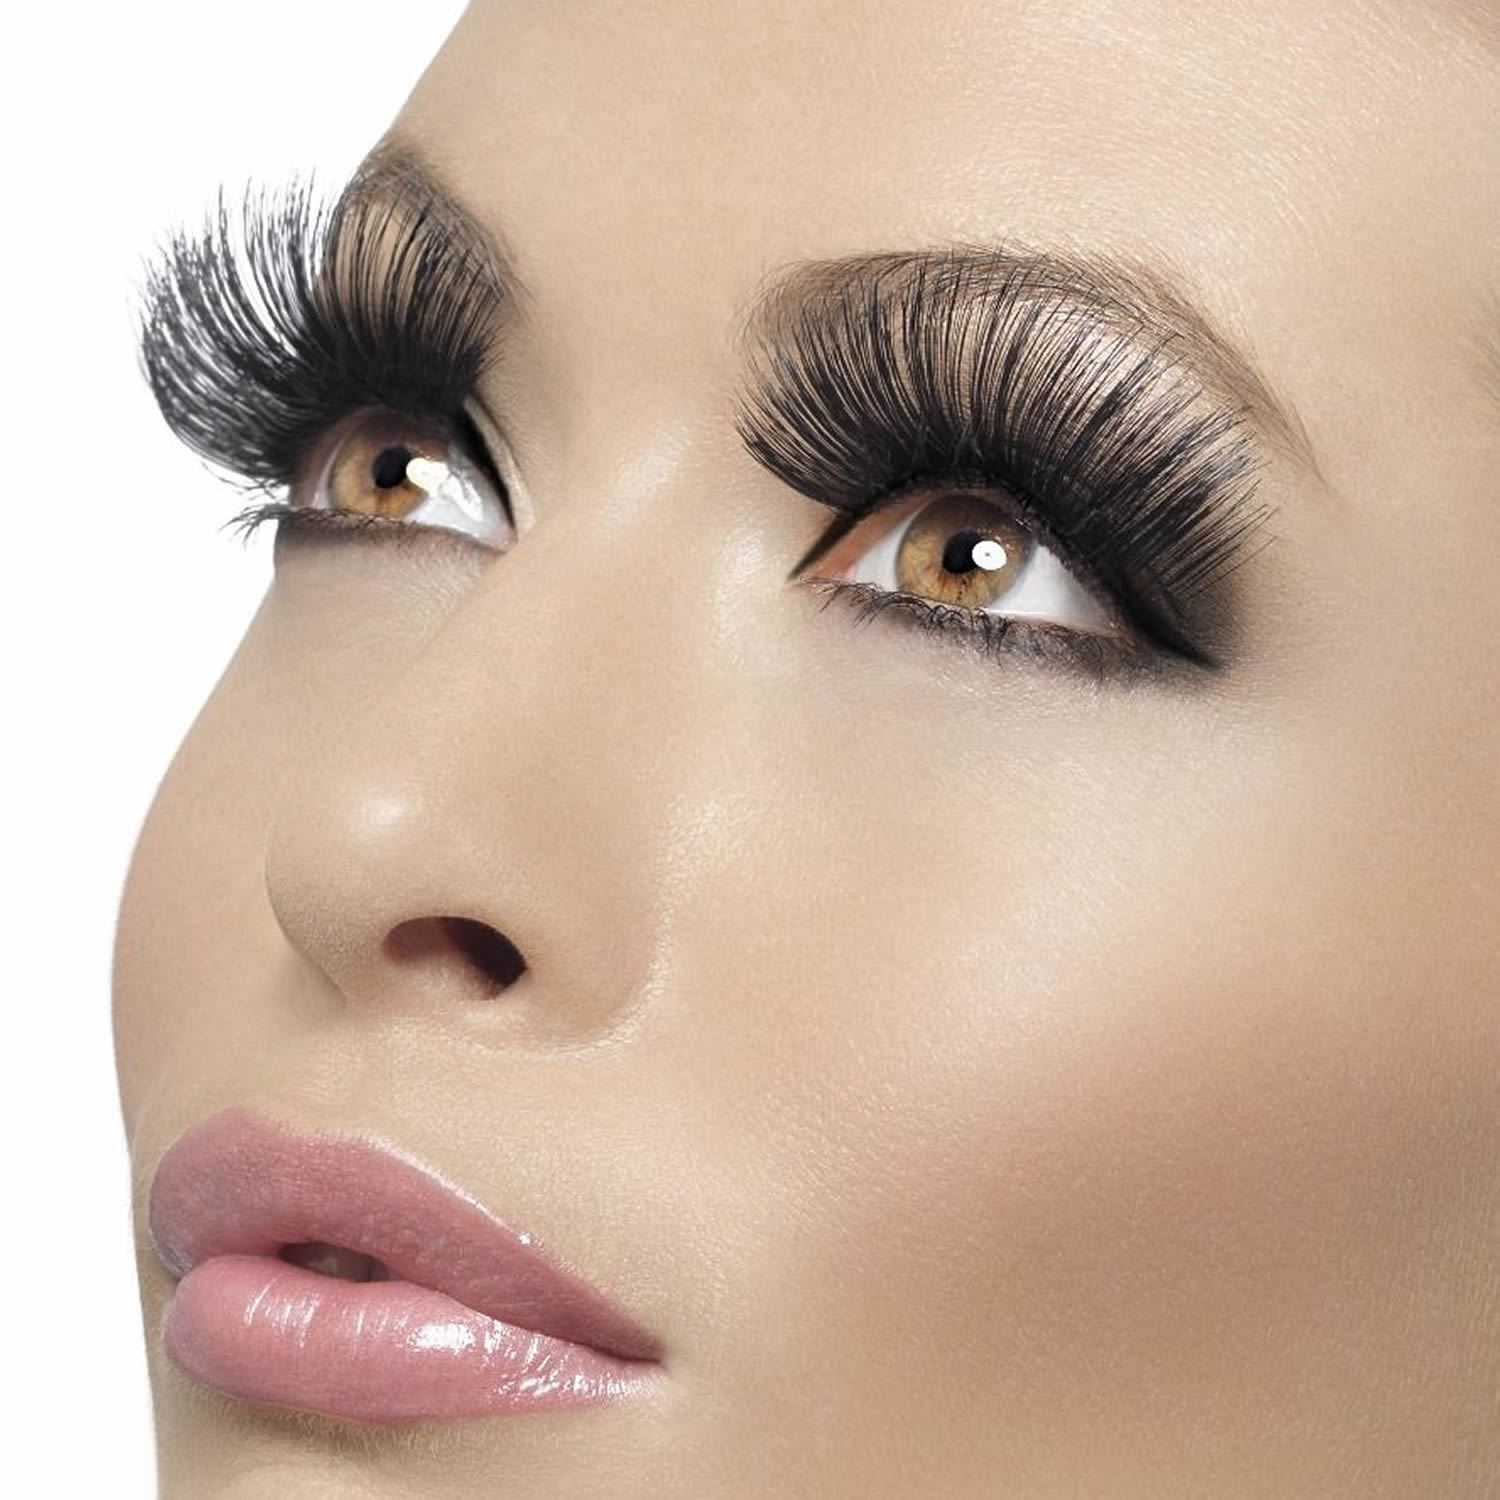 These dramatic lashes are super cheap